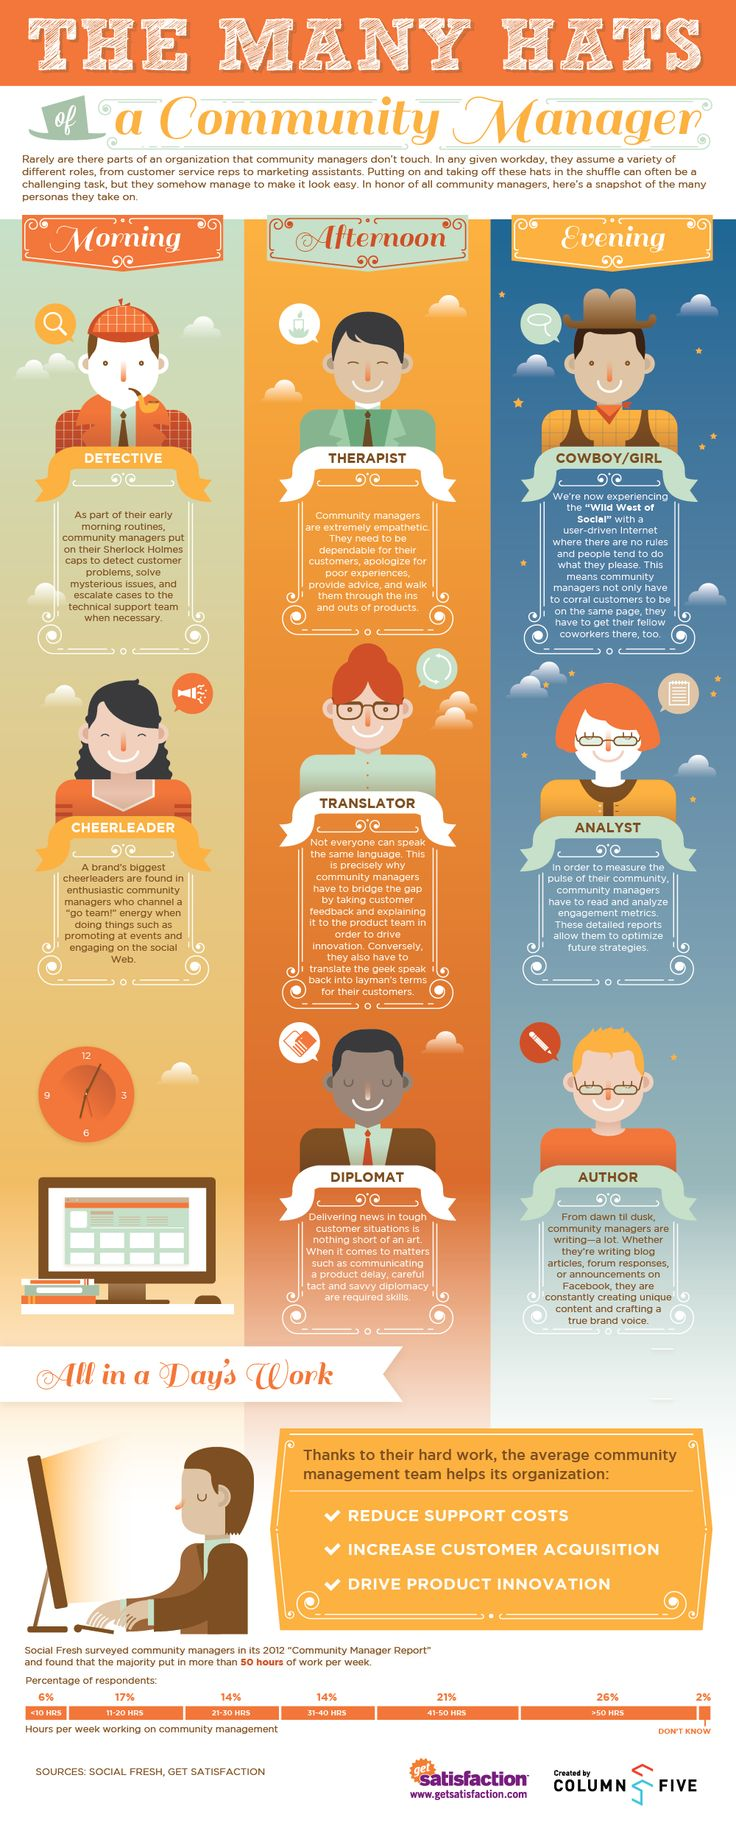 Many_Hats_of_Community_Manager_infographic_GetSatisfaction.png Source: Ragan.com and GetSatisfaction.com